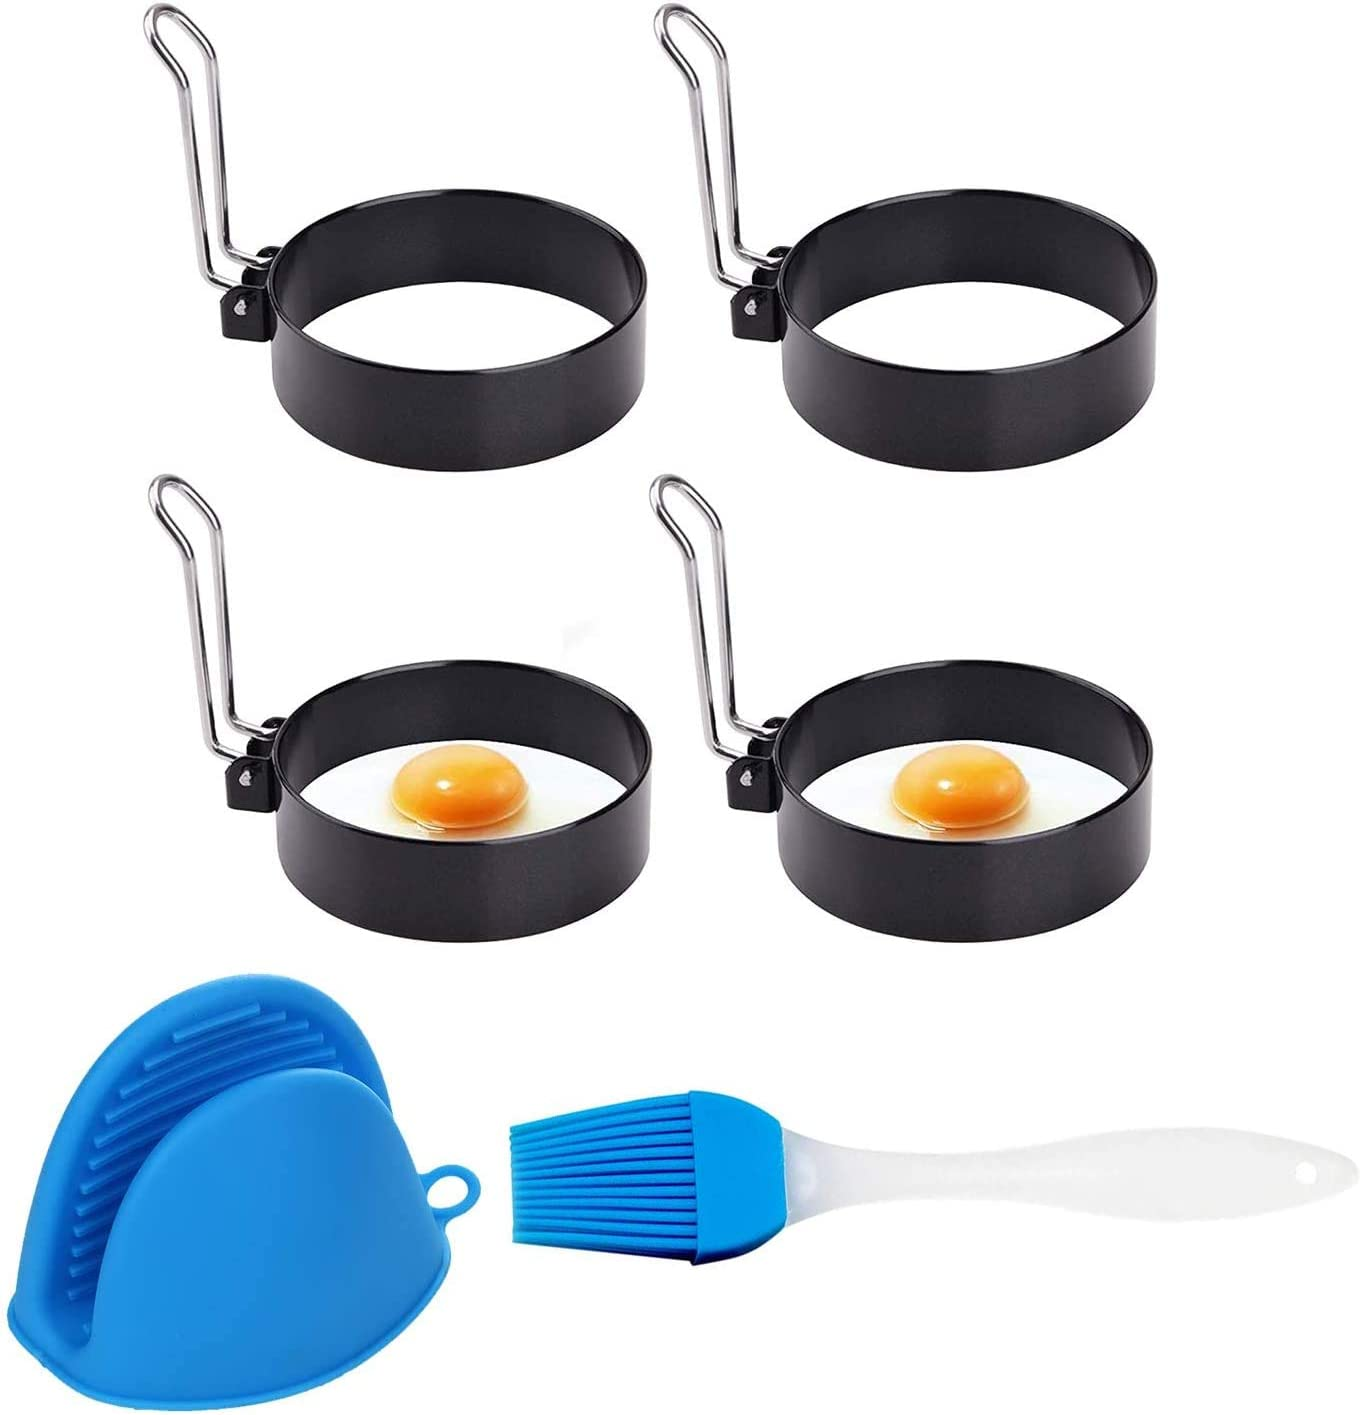 Egg Ring Mold For Cooking, Stainless Steel Egg Poacher Non-Stick Fried Egg Maker Mold Round Egg Cooker Rings With brush kitchen Tools With Oven Glove